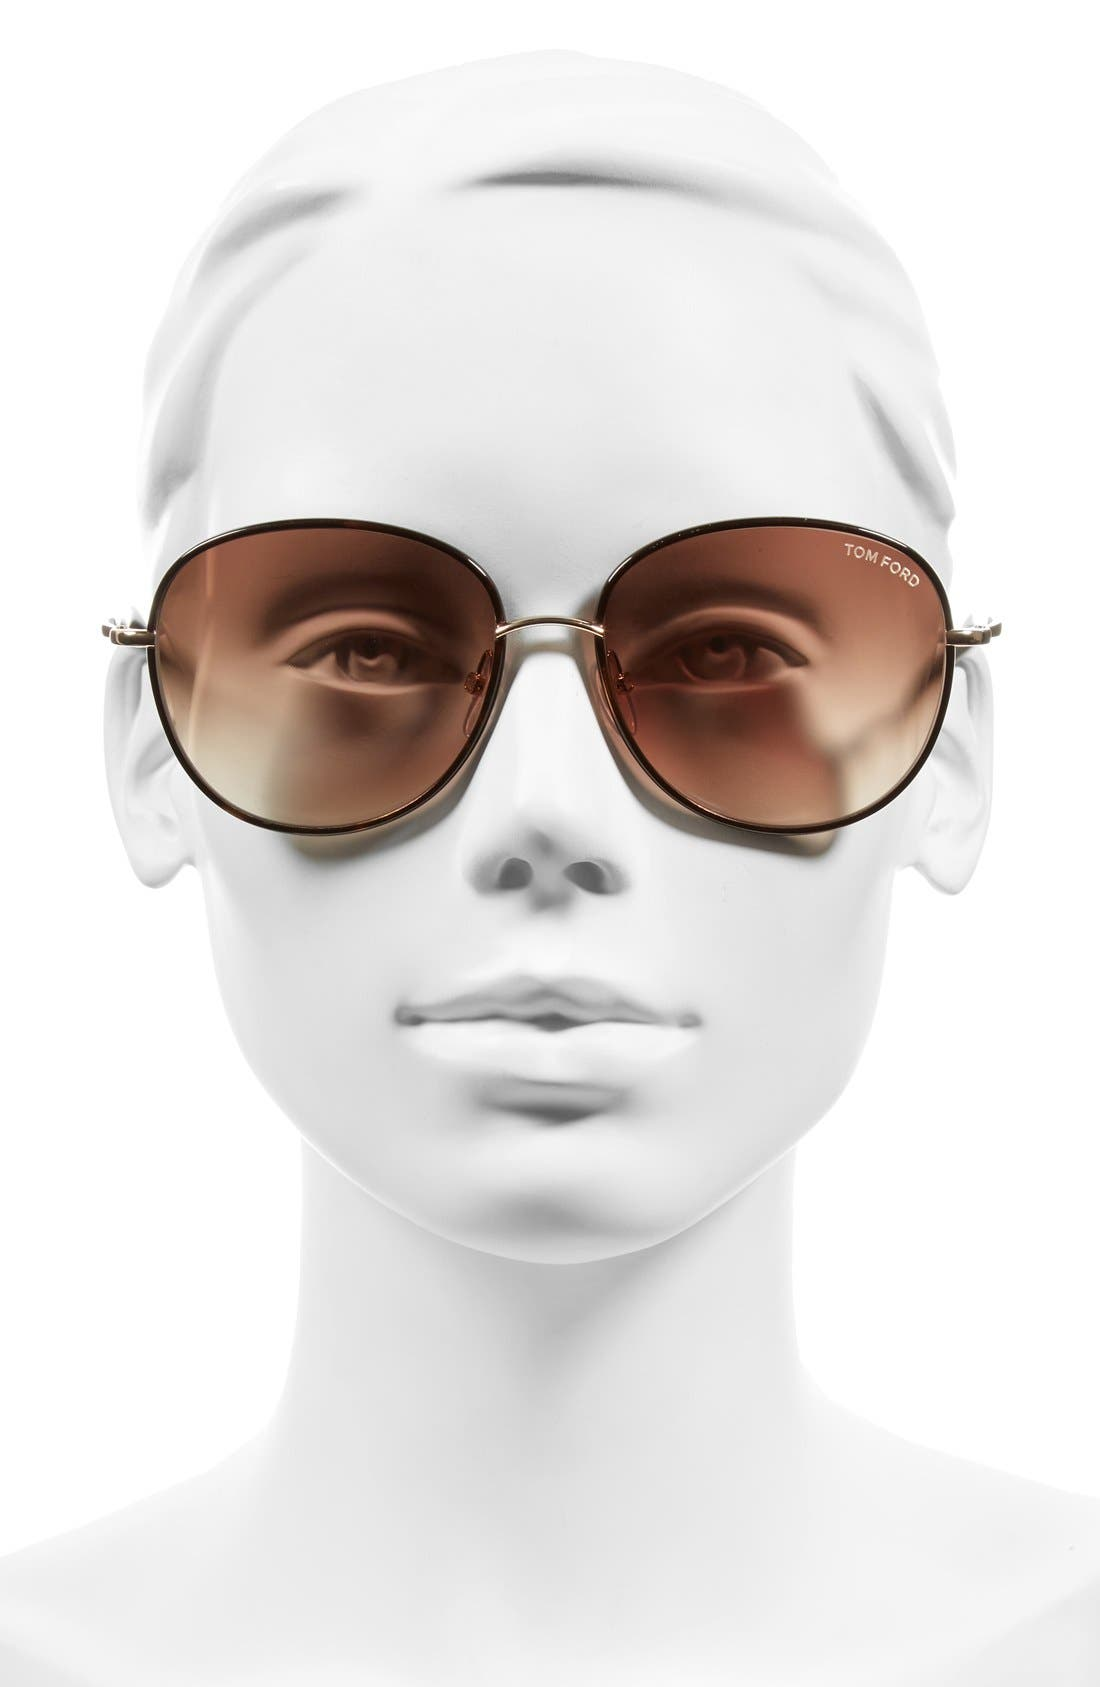 Georgia 59mm Sunglasses,                             Alternate thumbnail 2, color,                             Rose Gold/ Havana/ Brown